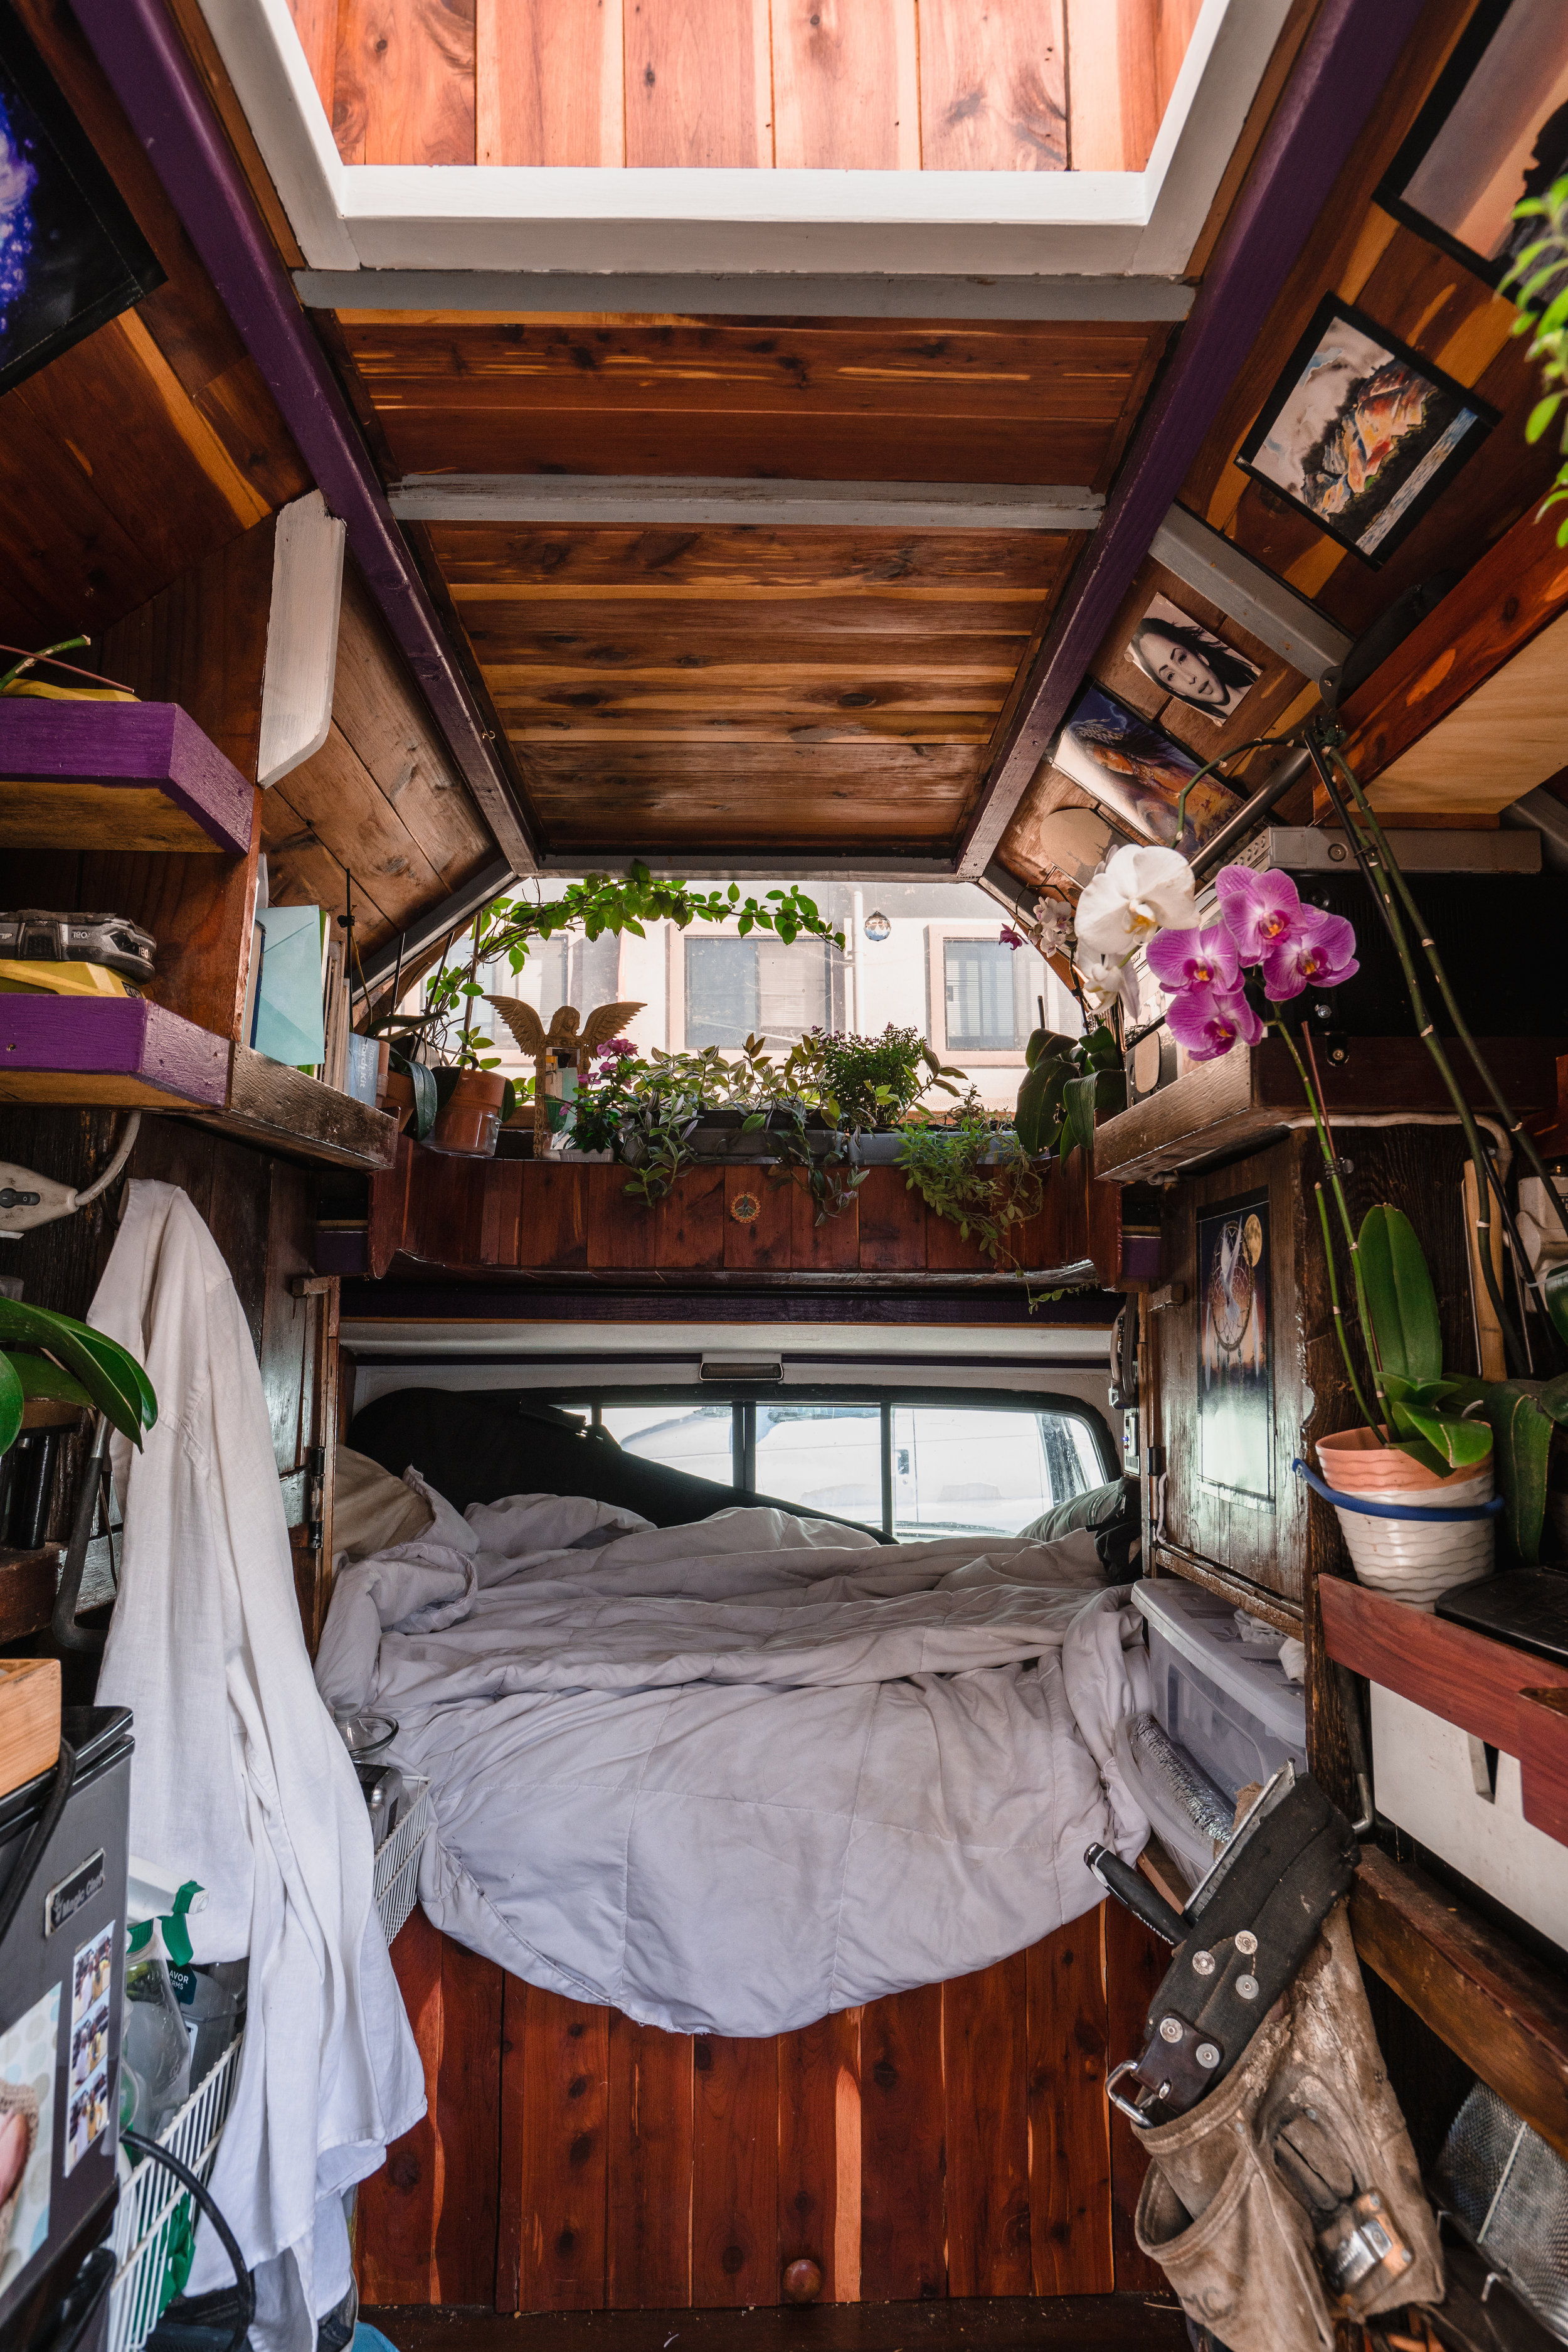 The inside of Billy's beautiful plant-filled bus!